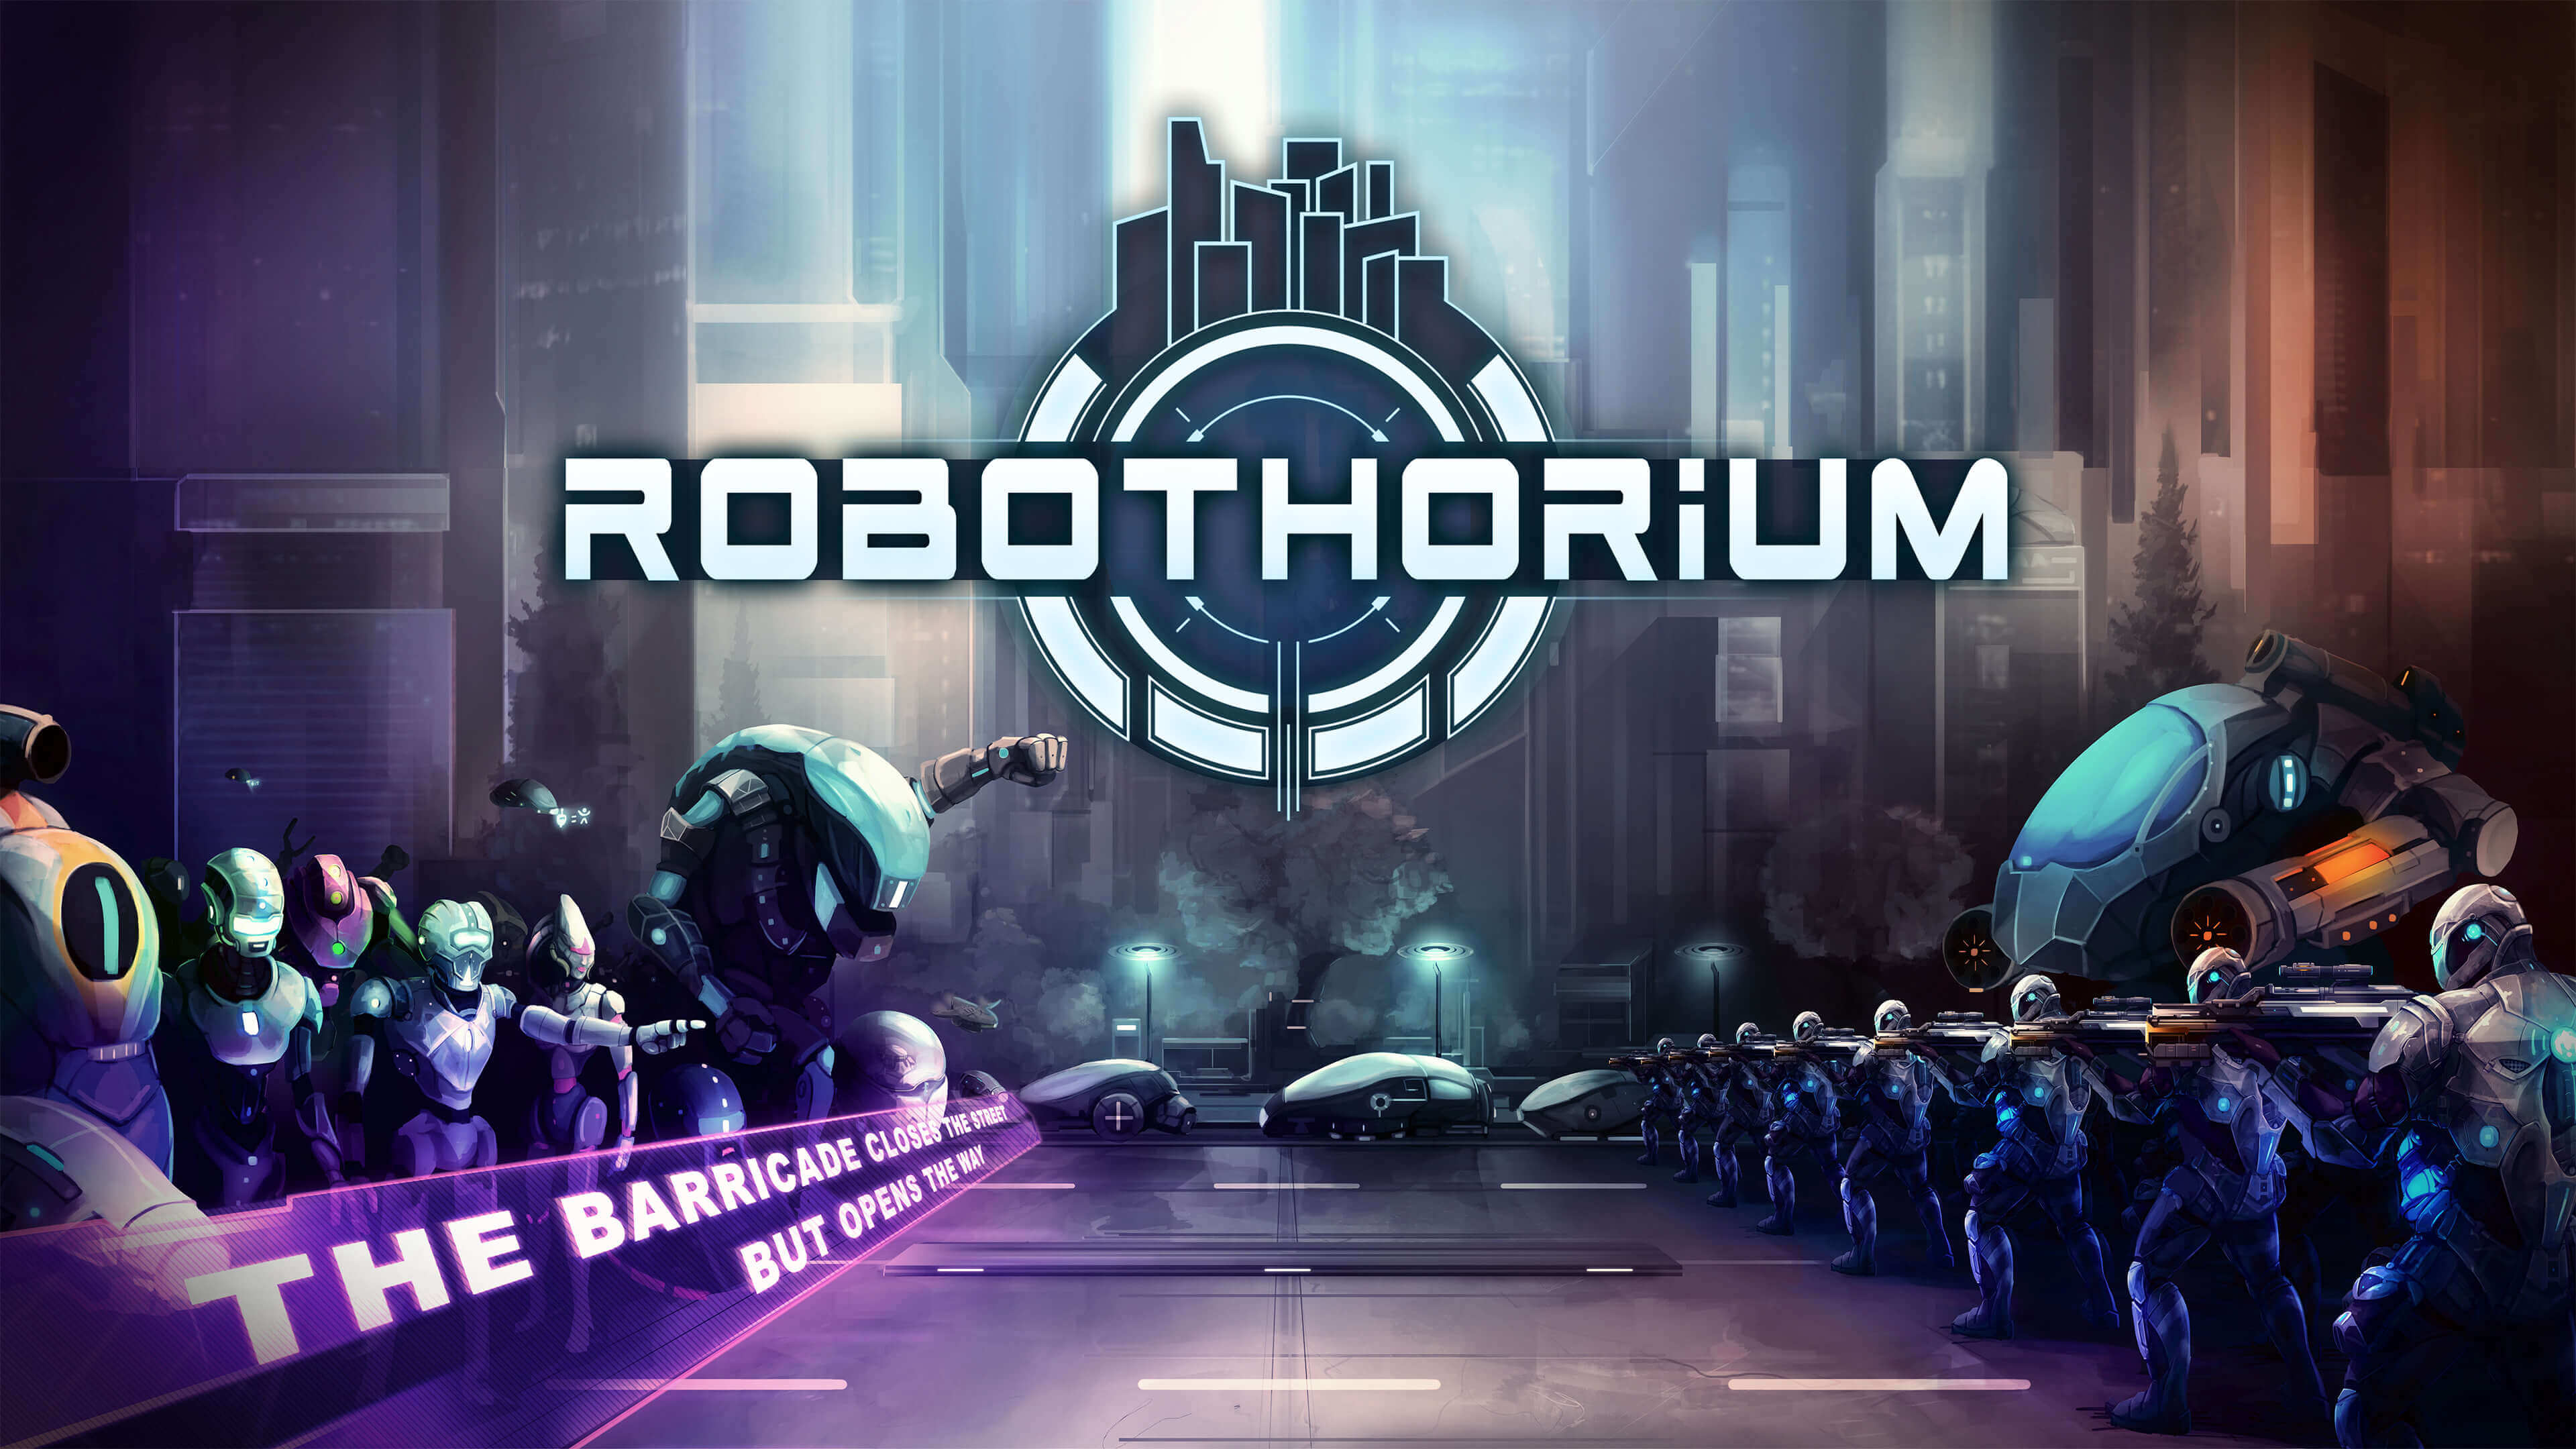 From Gamesom: sci-fi game Robothorium is coming to Switch in 2019